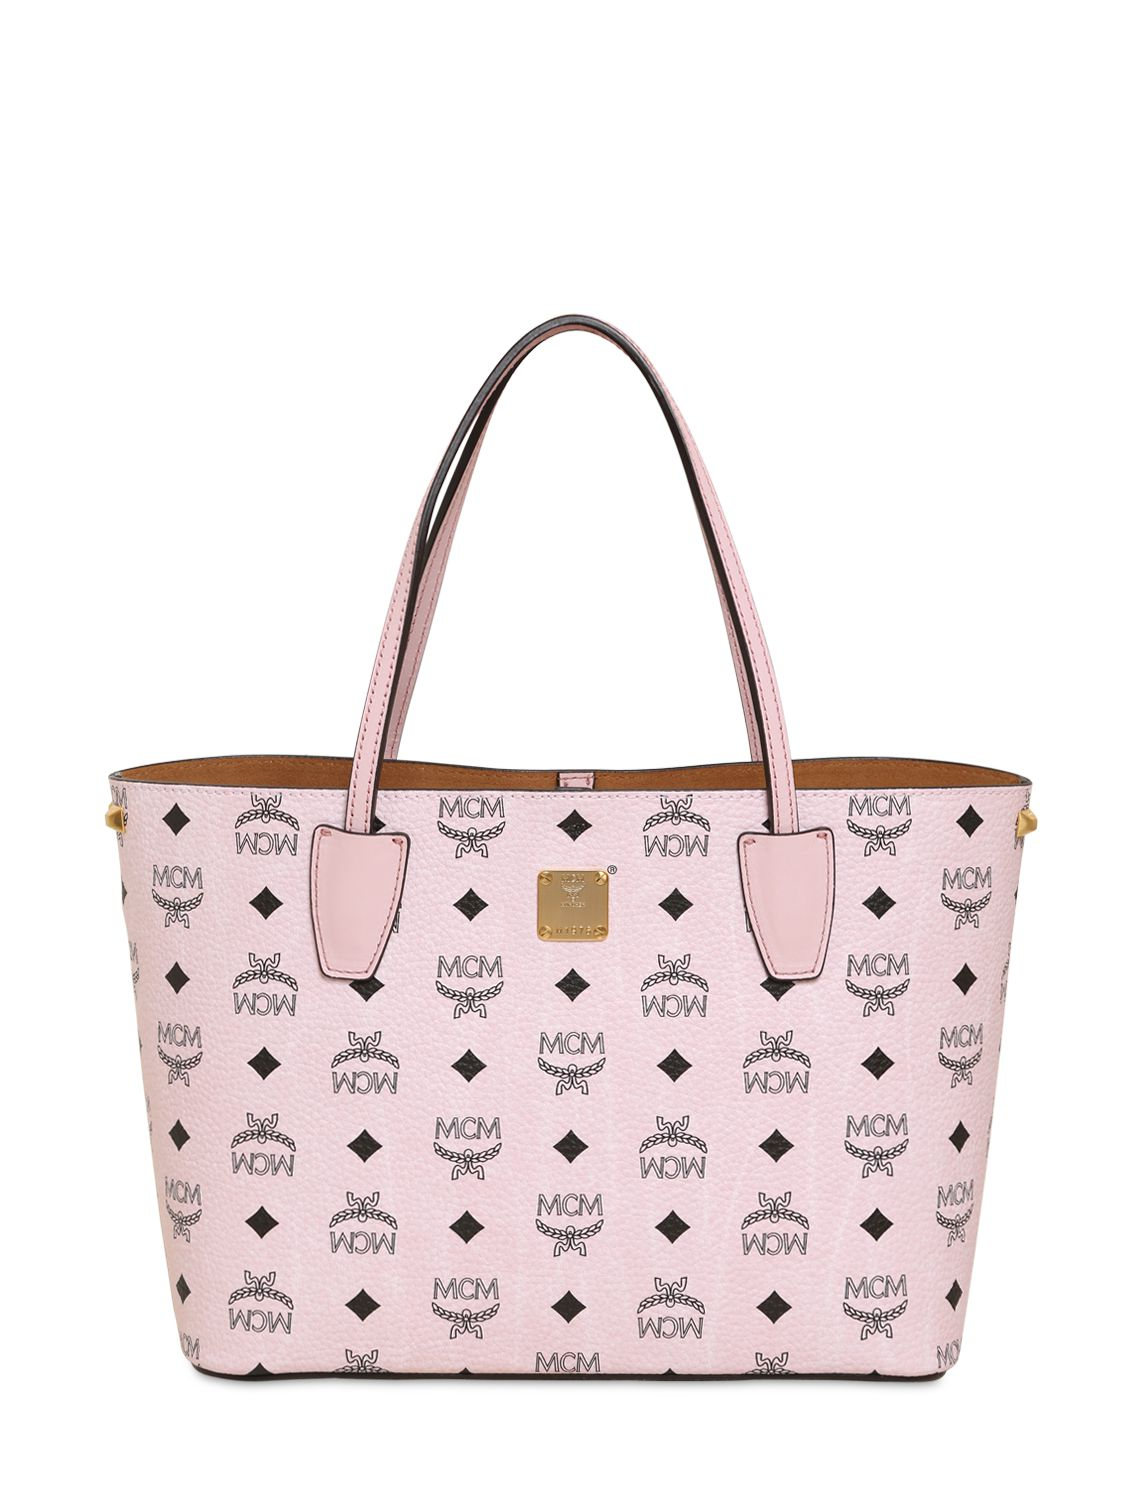 mcm small printed faux leather tote bag in pink lyst